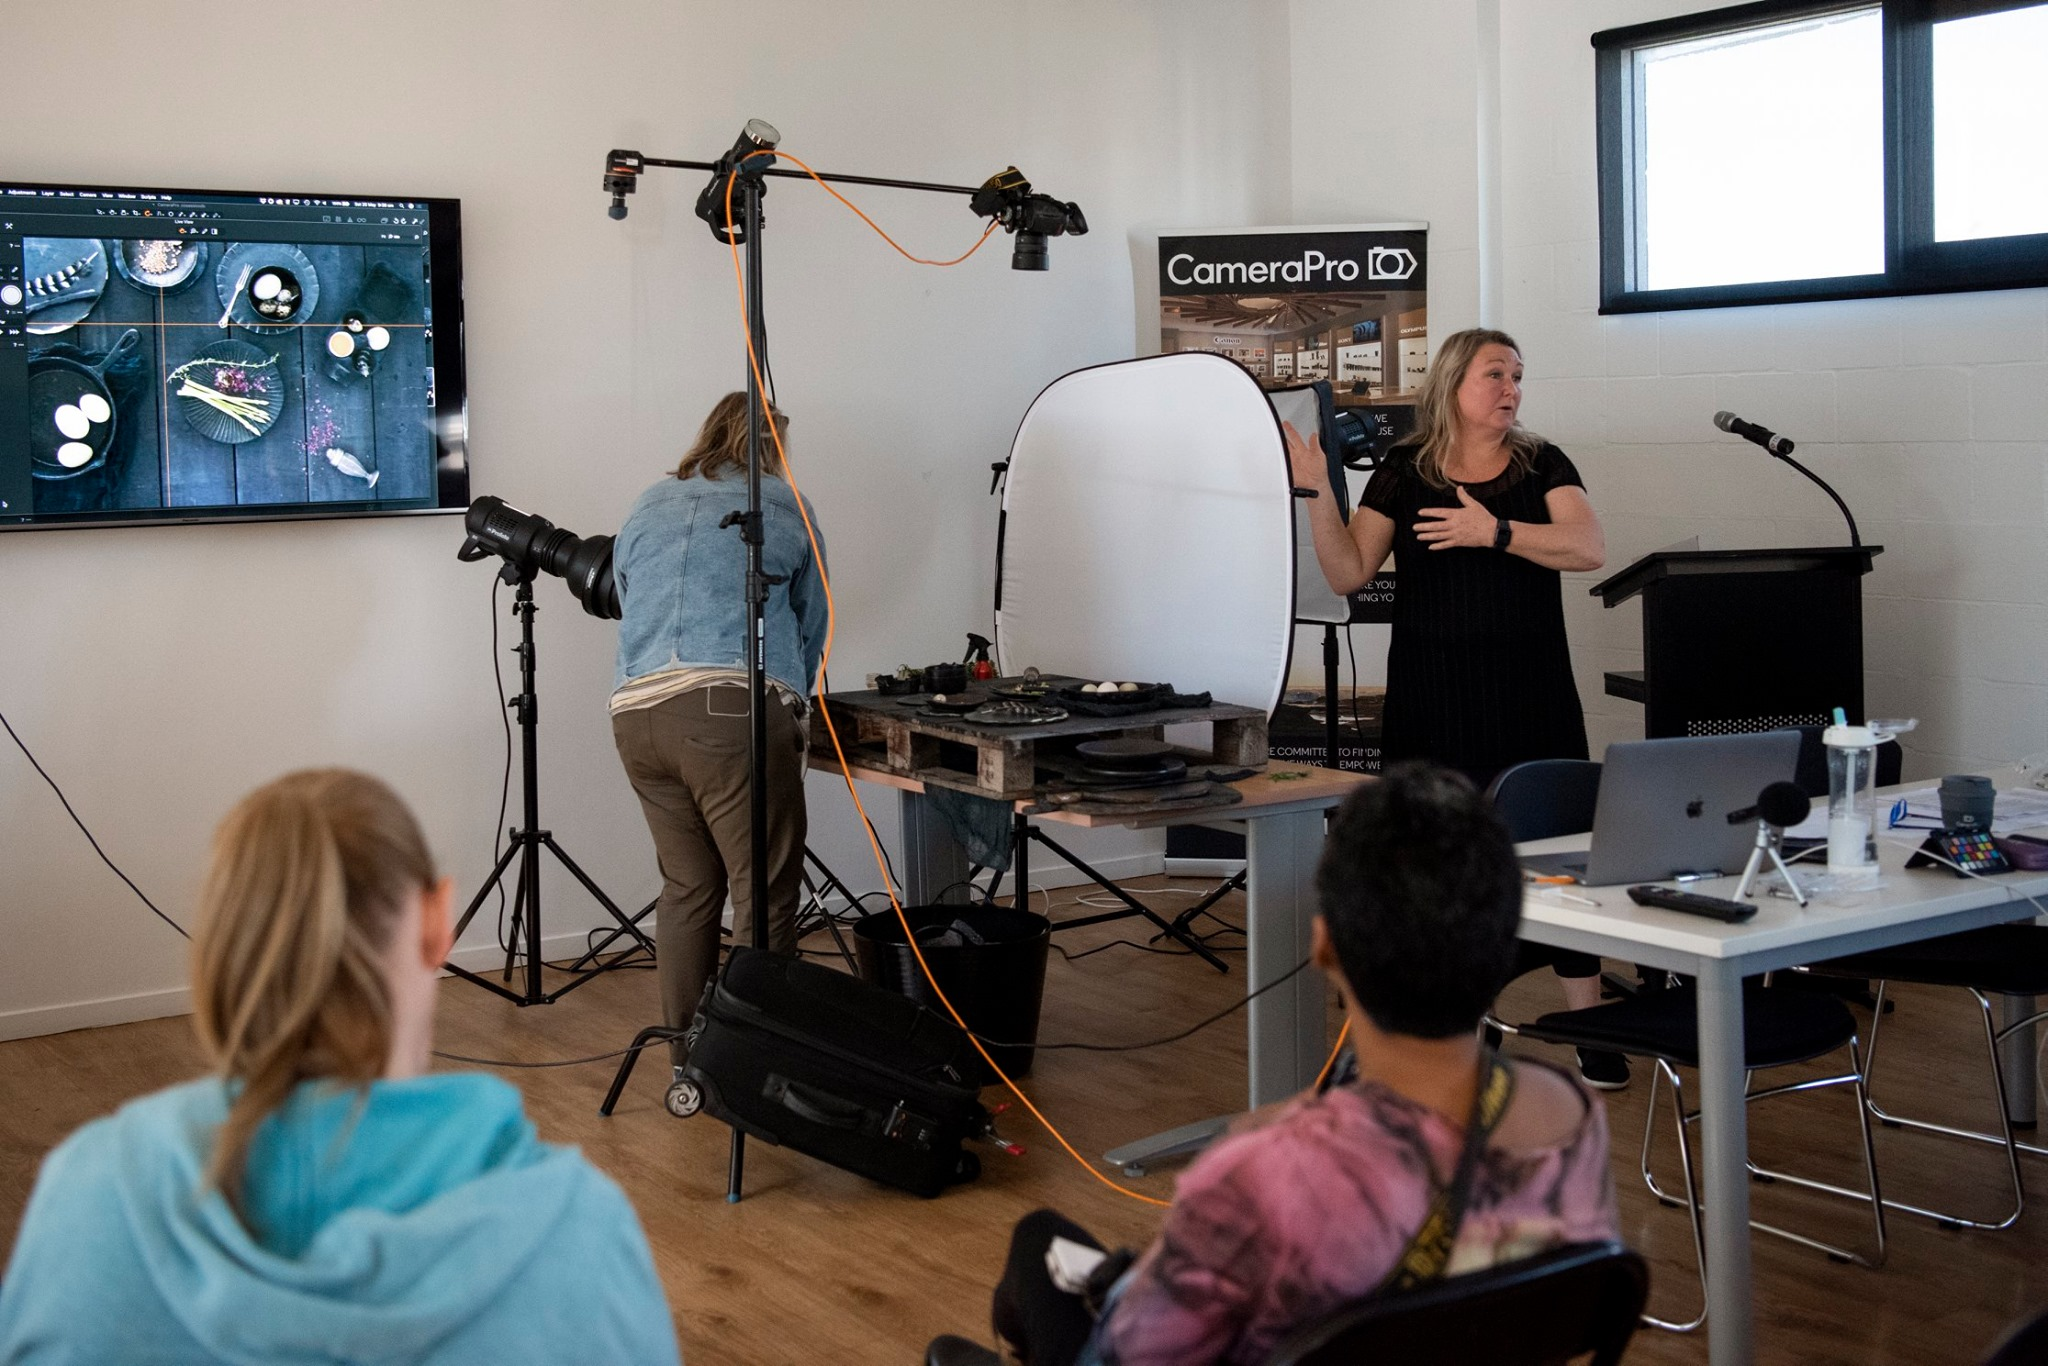 Food photography flat lay demo by Nadine Shaw at CameraPro Photography Festival